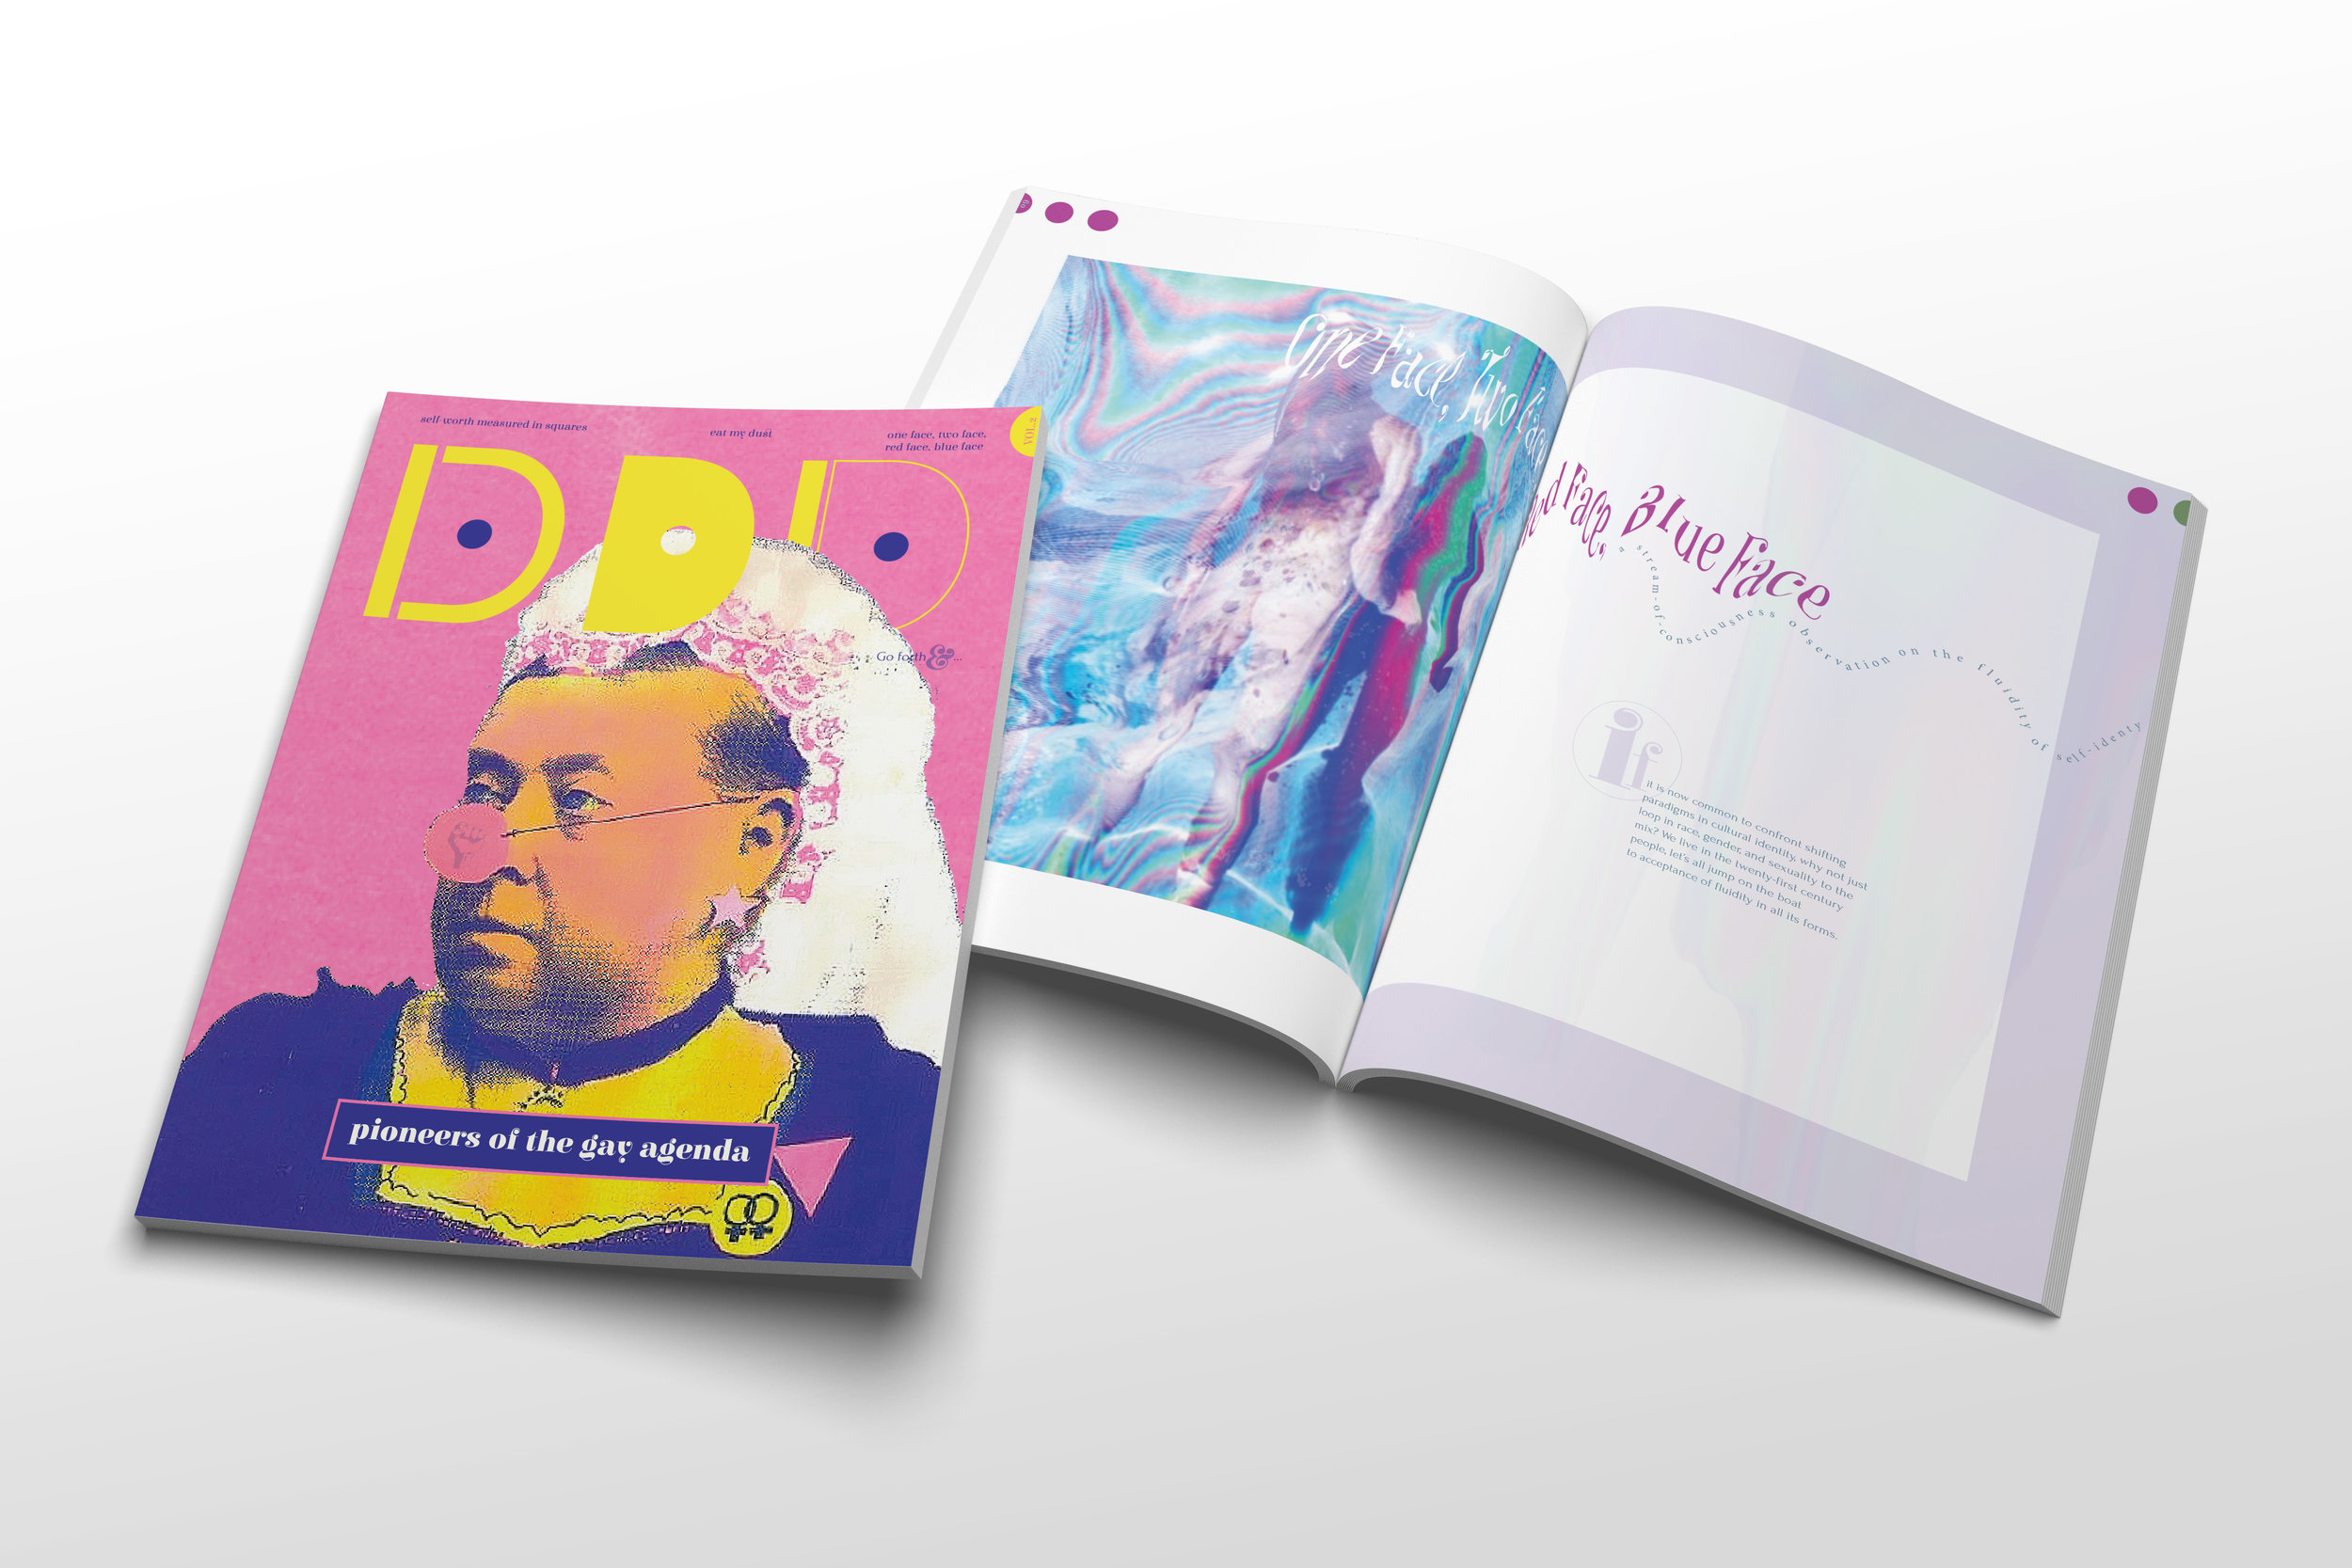 Note: this publication was created in concept and execution by Chelsea, it does not exist in the world (yet…)